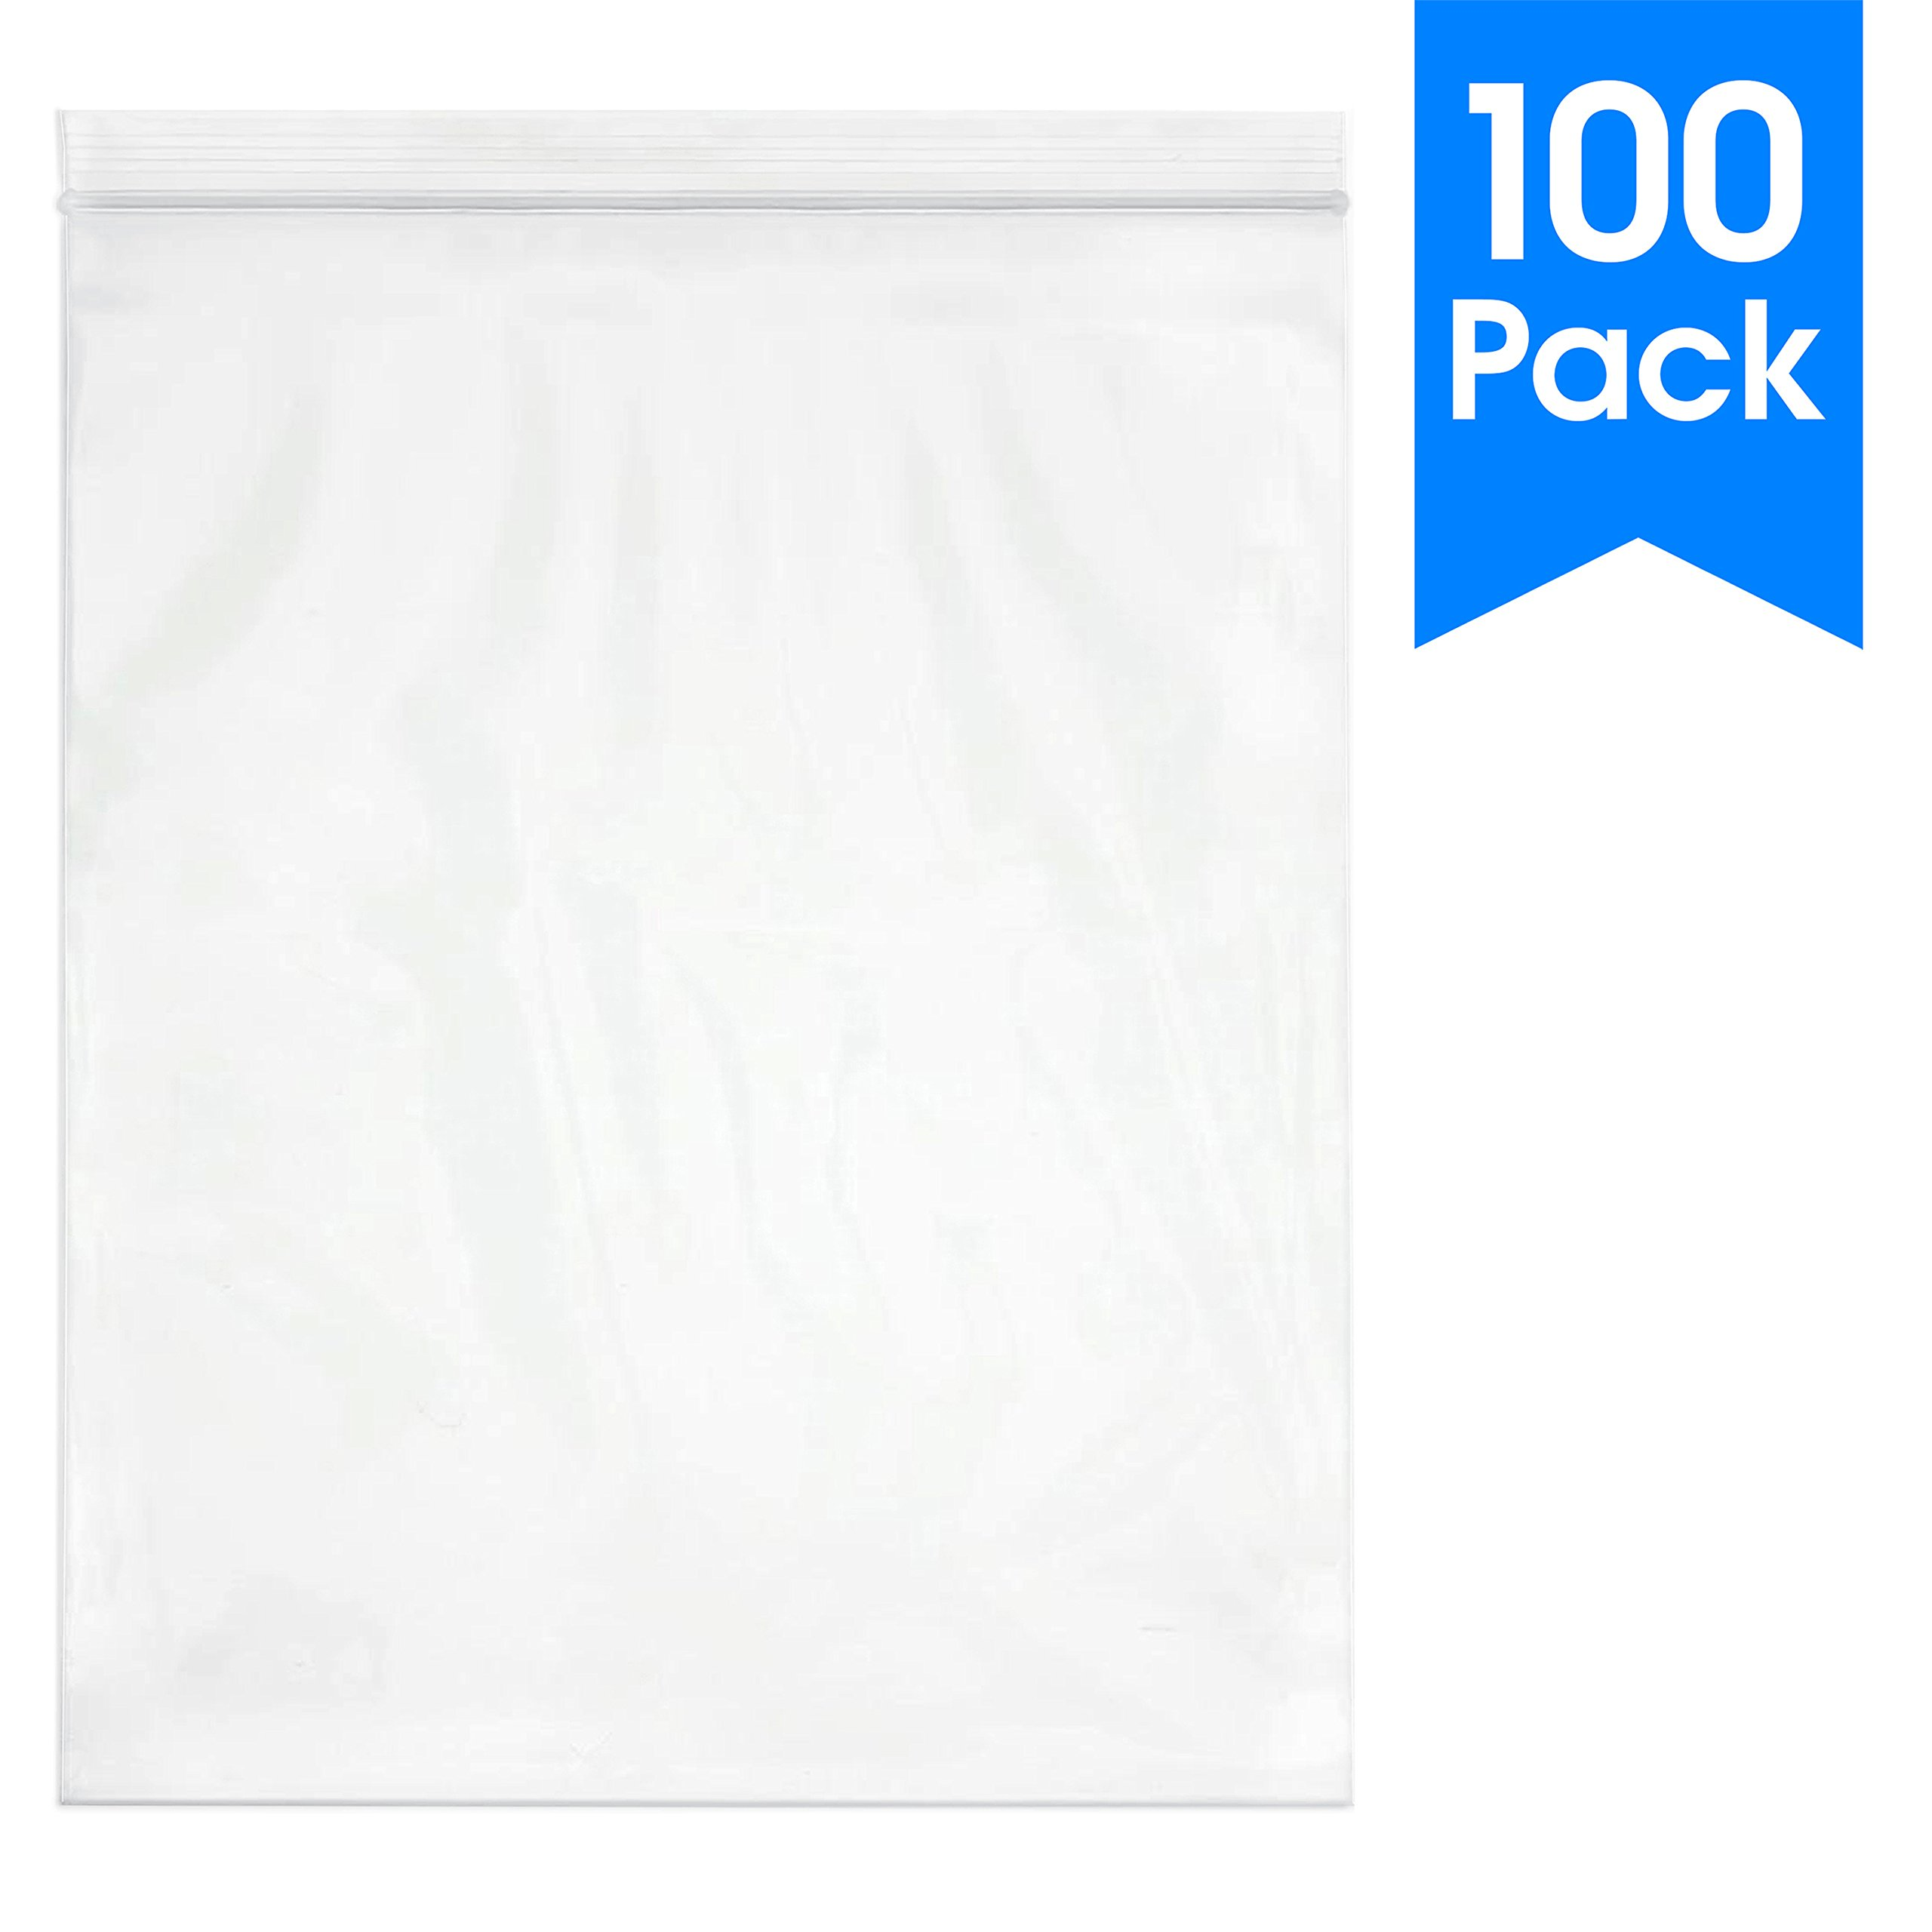 100 Count - 13 X 15, 2 Mil Clear Plastic Reclosable Zip Poly Bags with Resealable Lock Seal Zipper by Spartan Industrial (More Sizes Available)